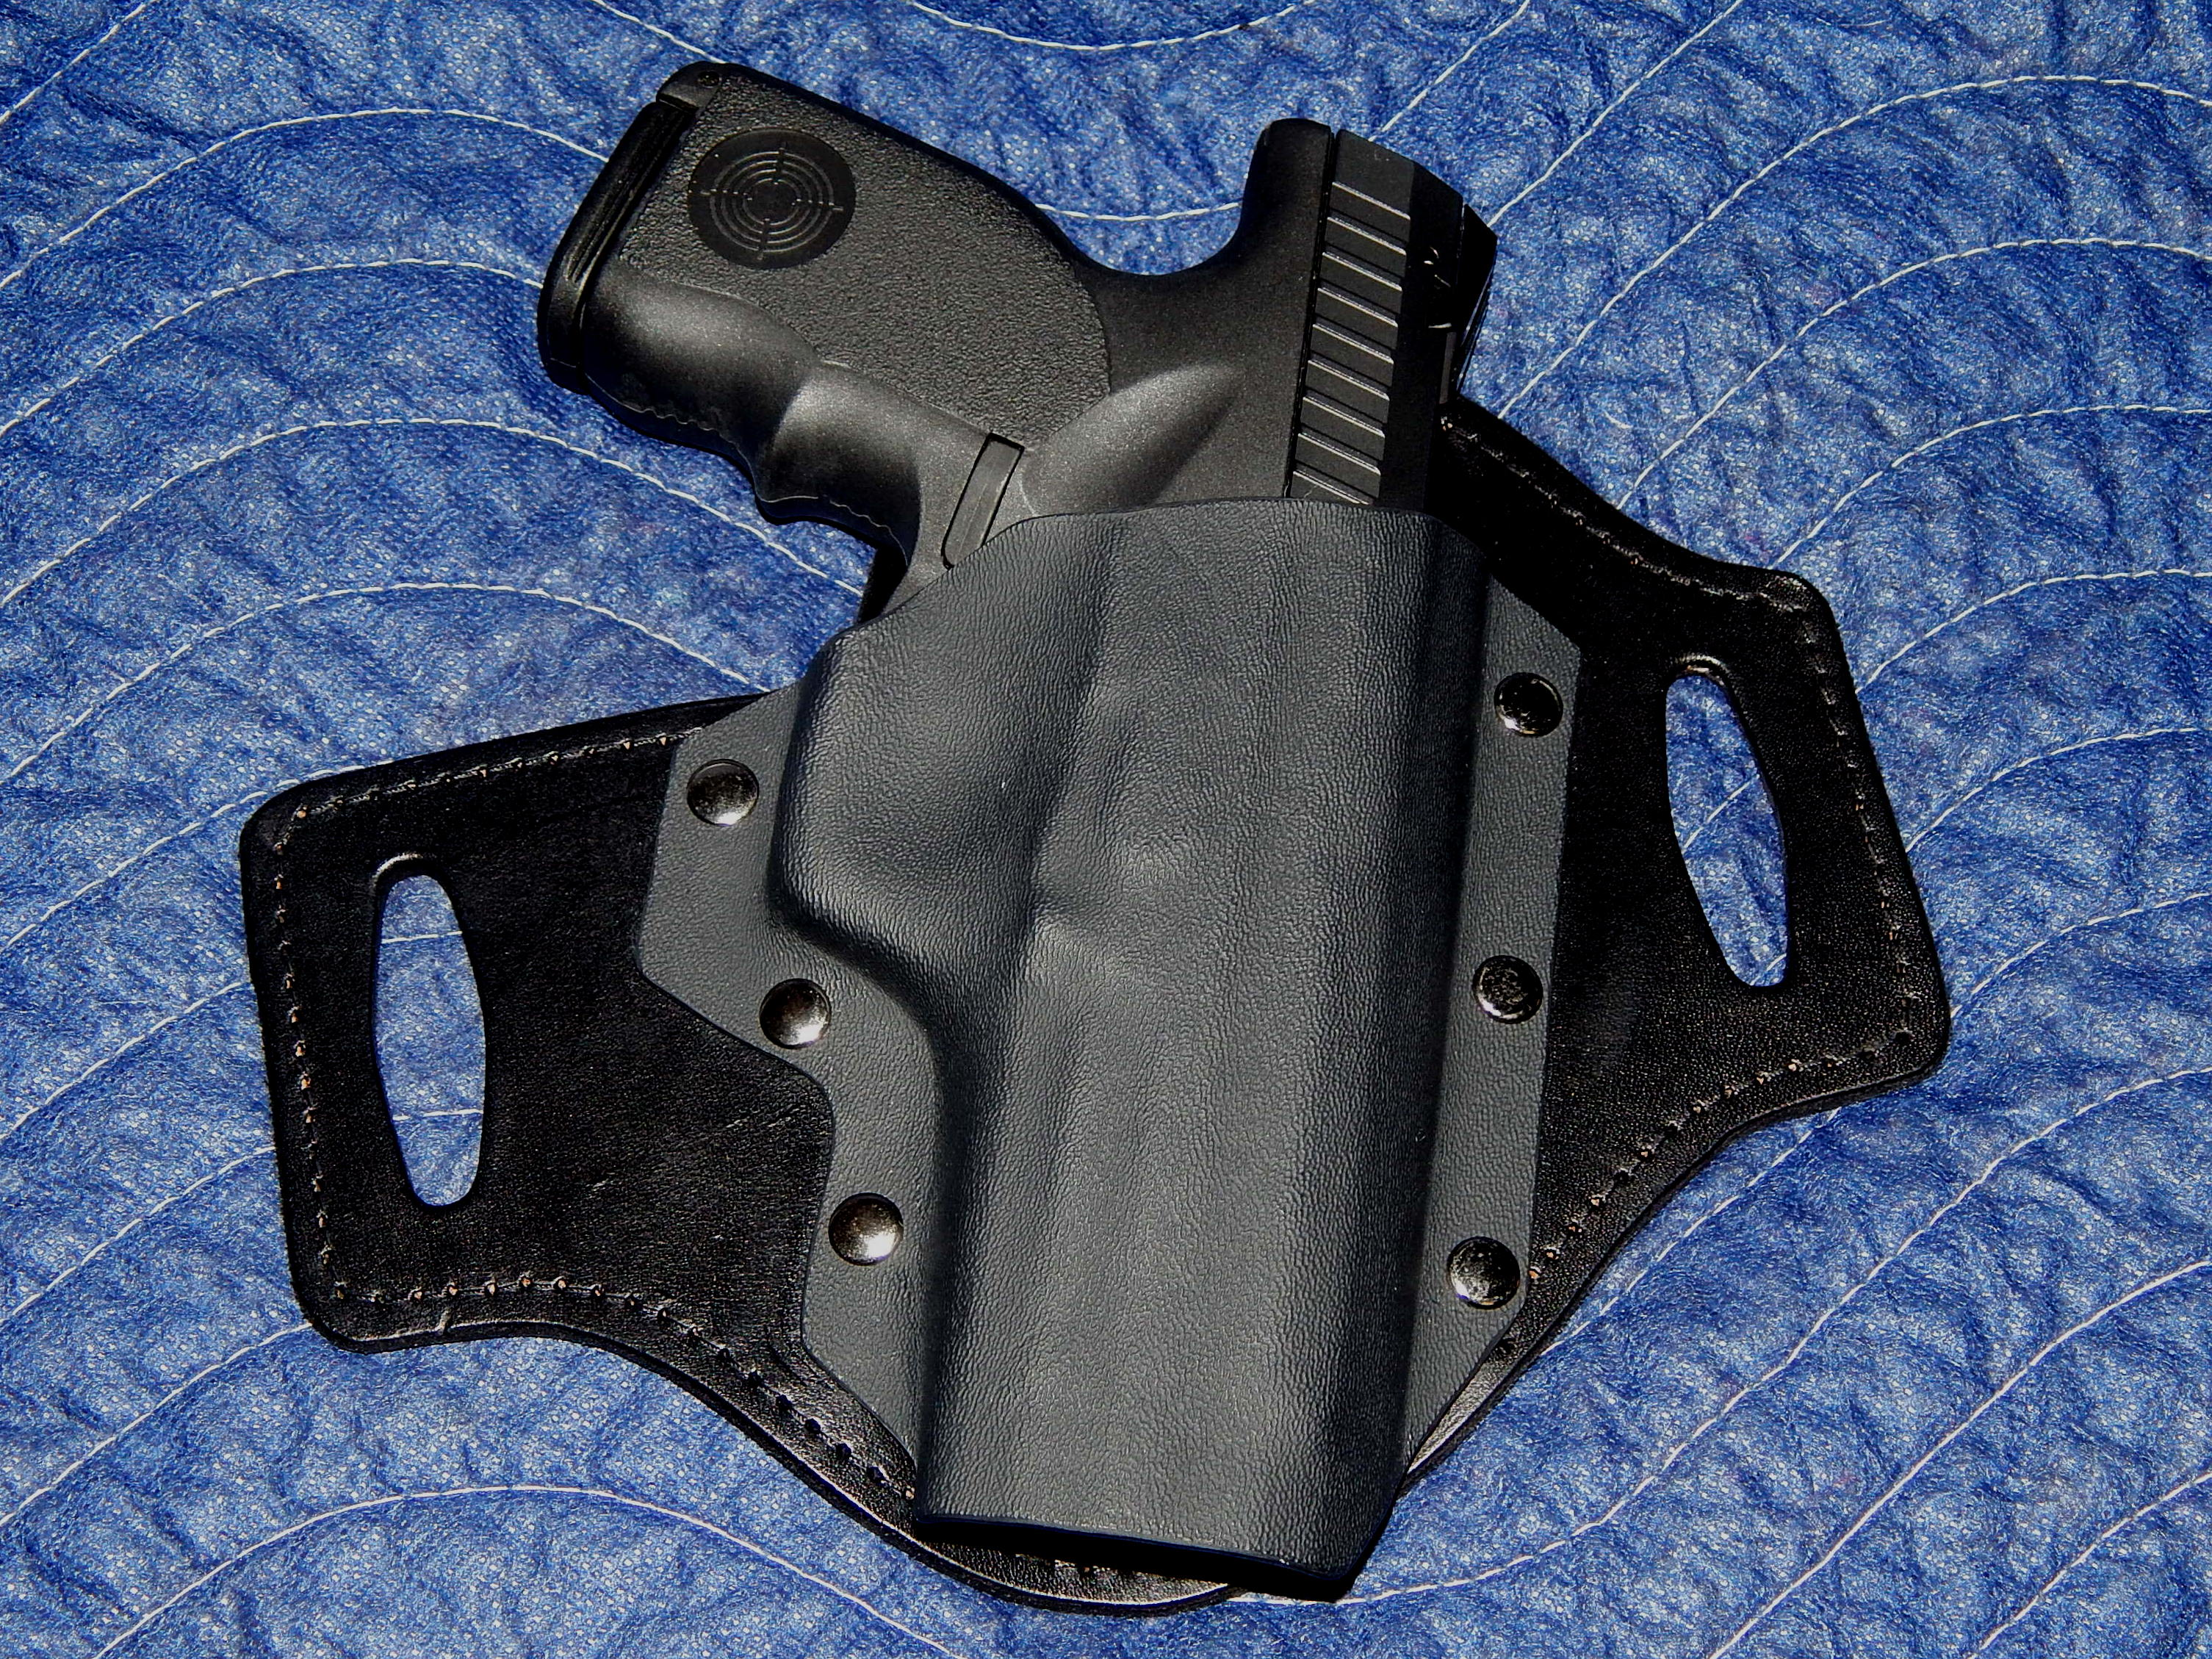 Steyr M9A1: What's Not to Like?